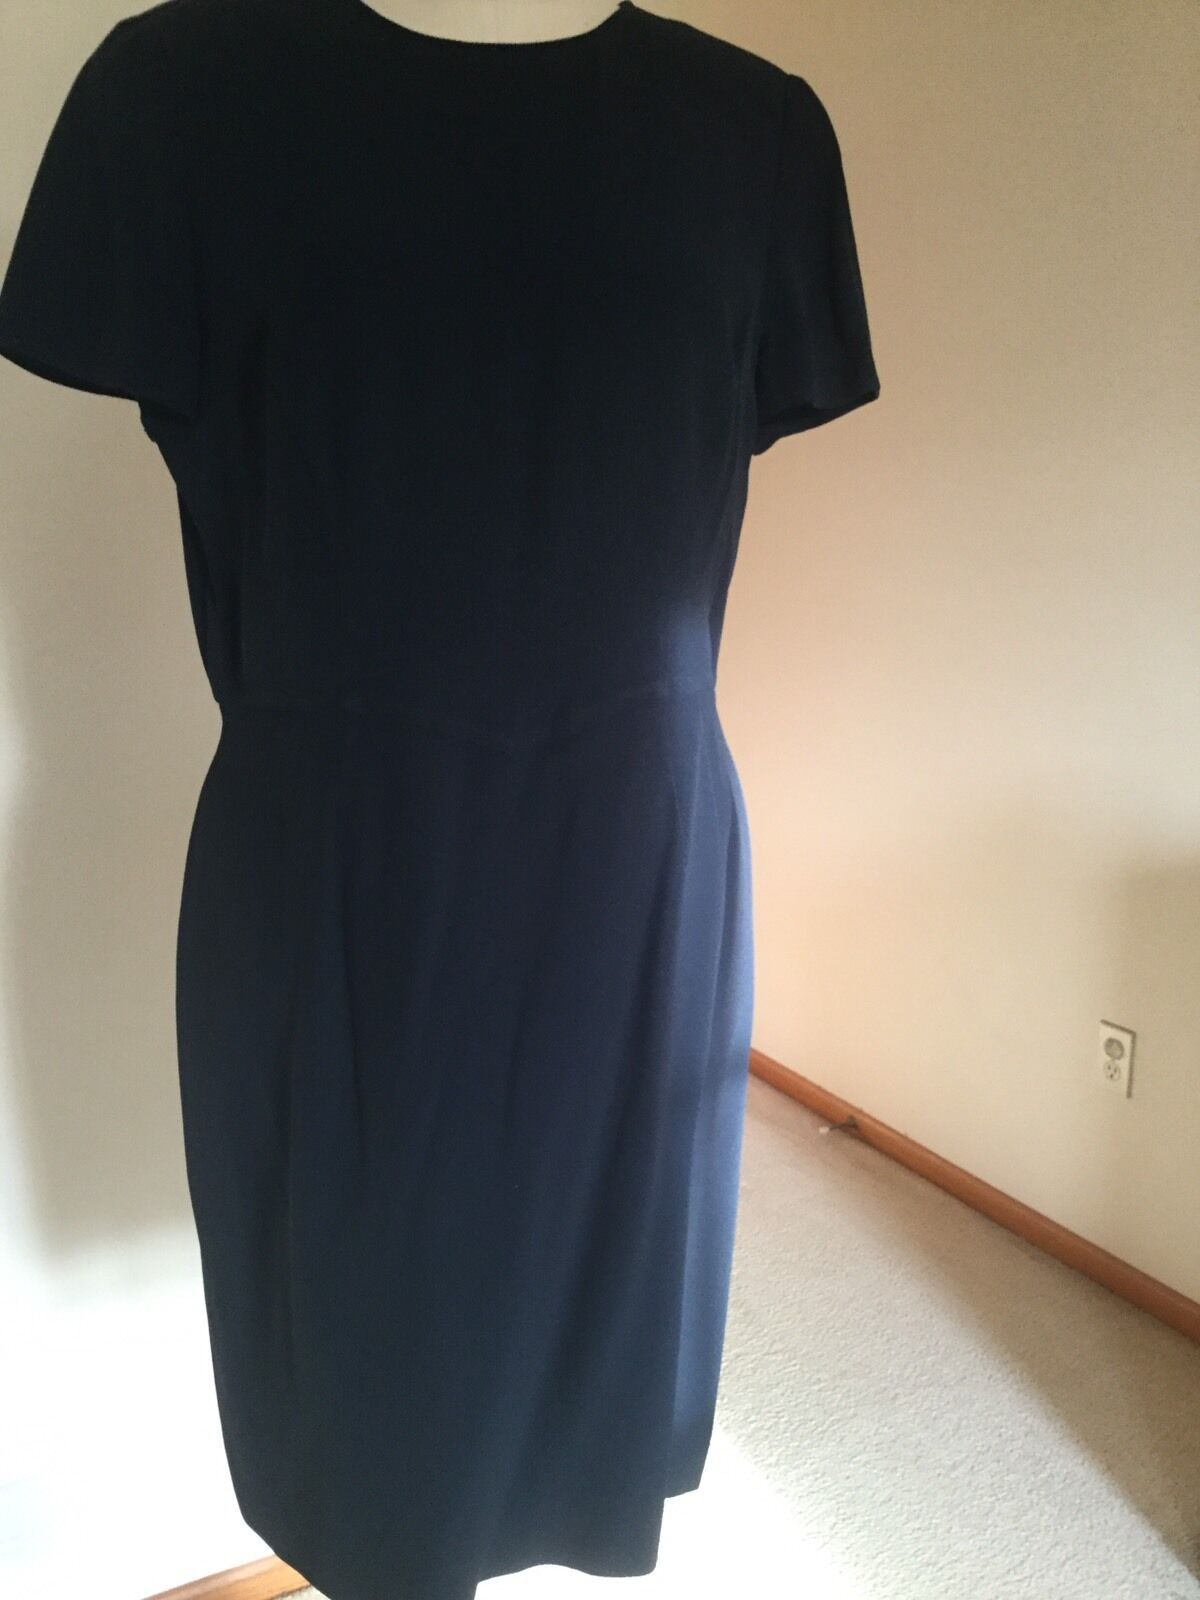 Armani dress,US Size 12,Navy,Short sleeves, image 1